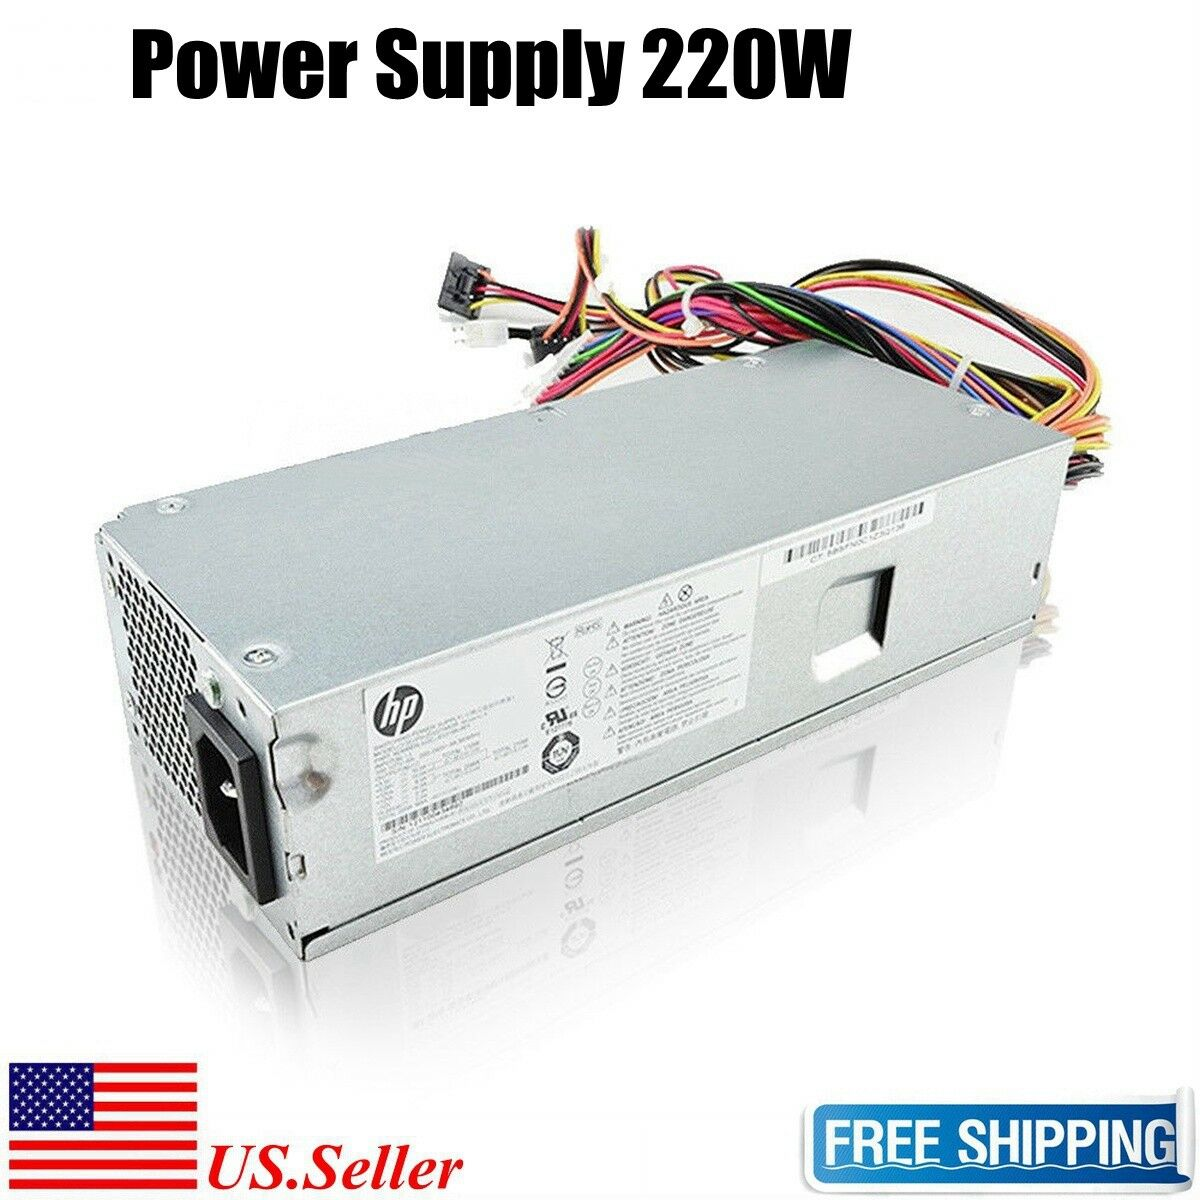 250W HP Power Supply FH-ZD221MGR Rev NEW! A P//N# 633195-001 Replace